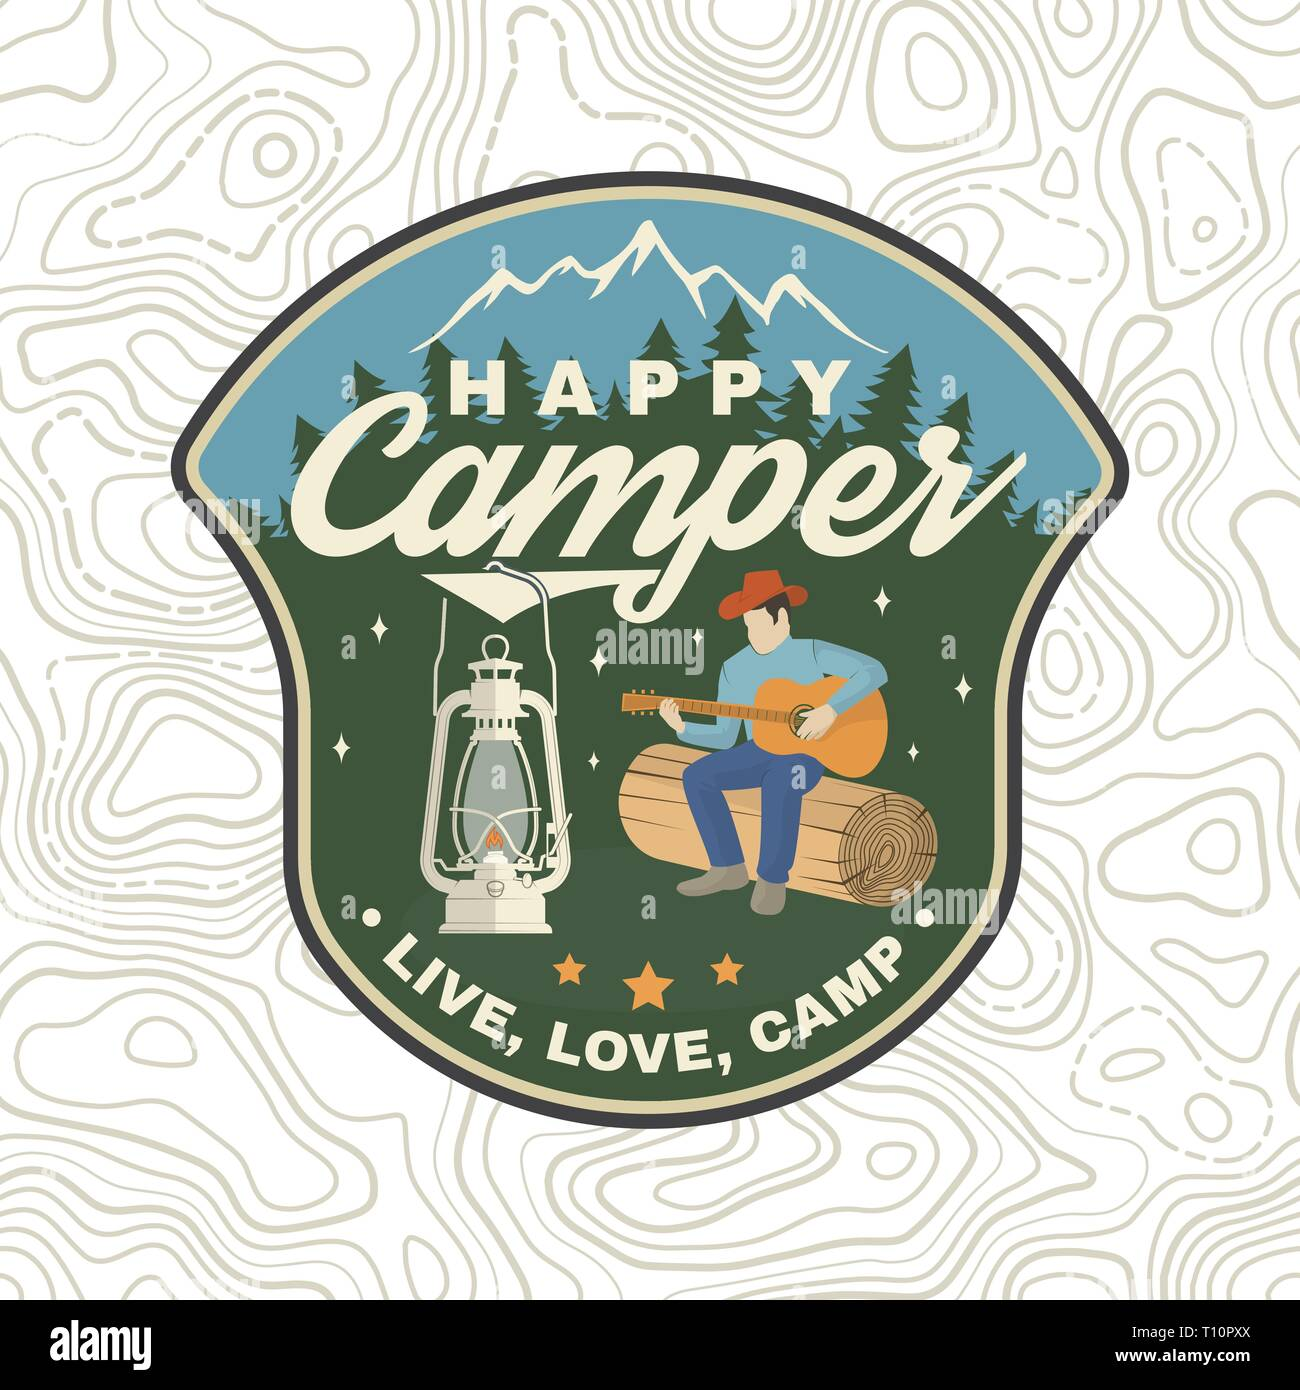 Happy camper patch. Vector illustration. Concept for shirt or logo, print, stamp, apparel or tee. Vintage typography design with camp lantern, man with guitar and mountain silhouette. Live, love, camp - Stock Vector